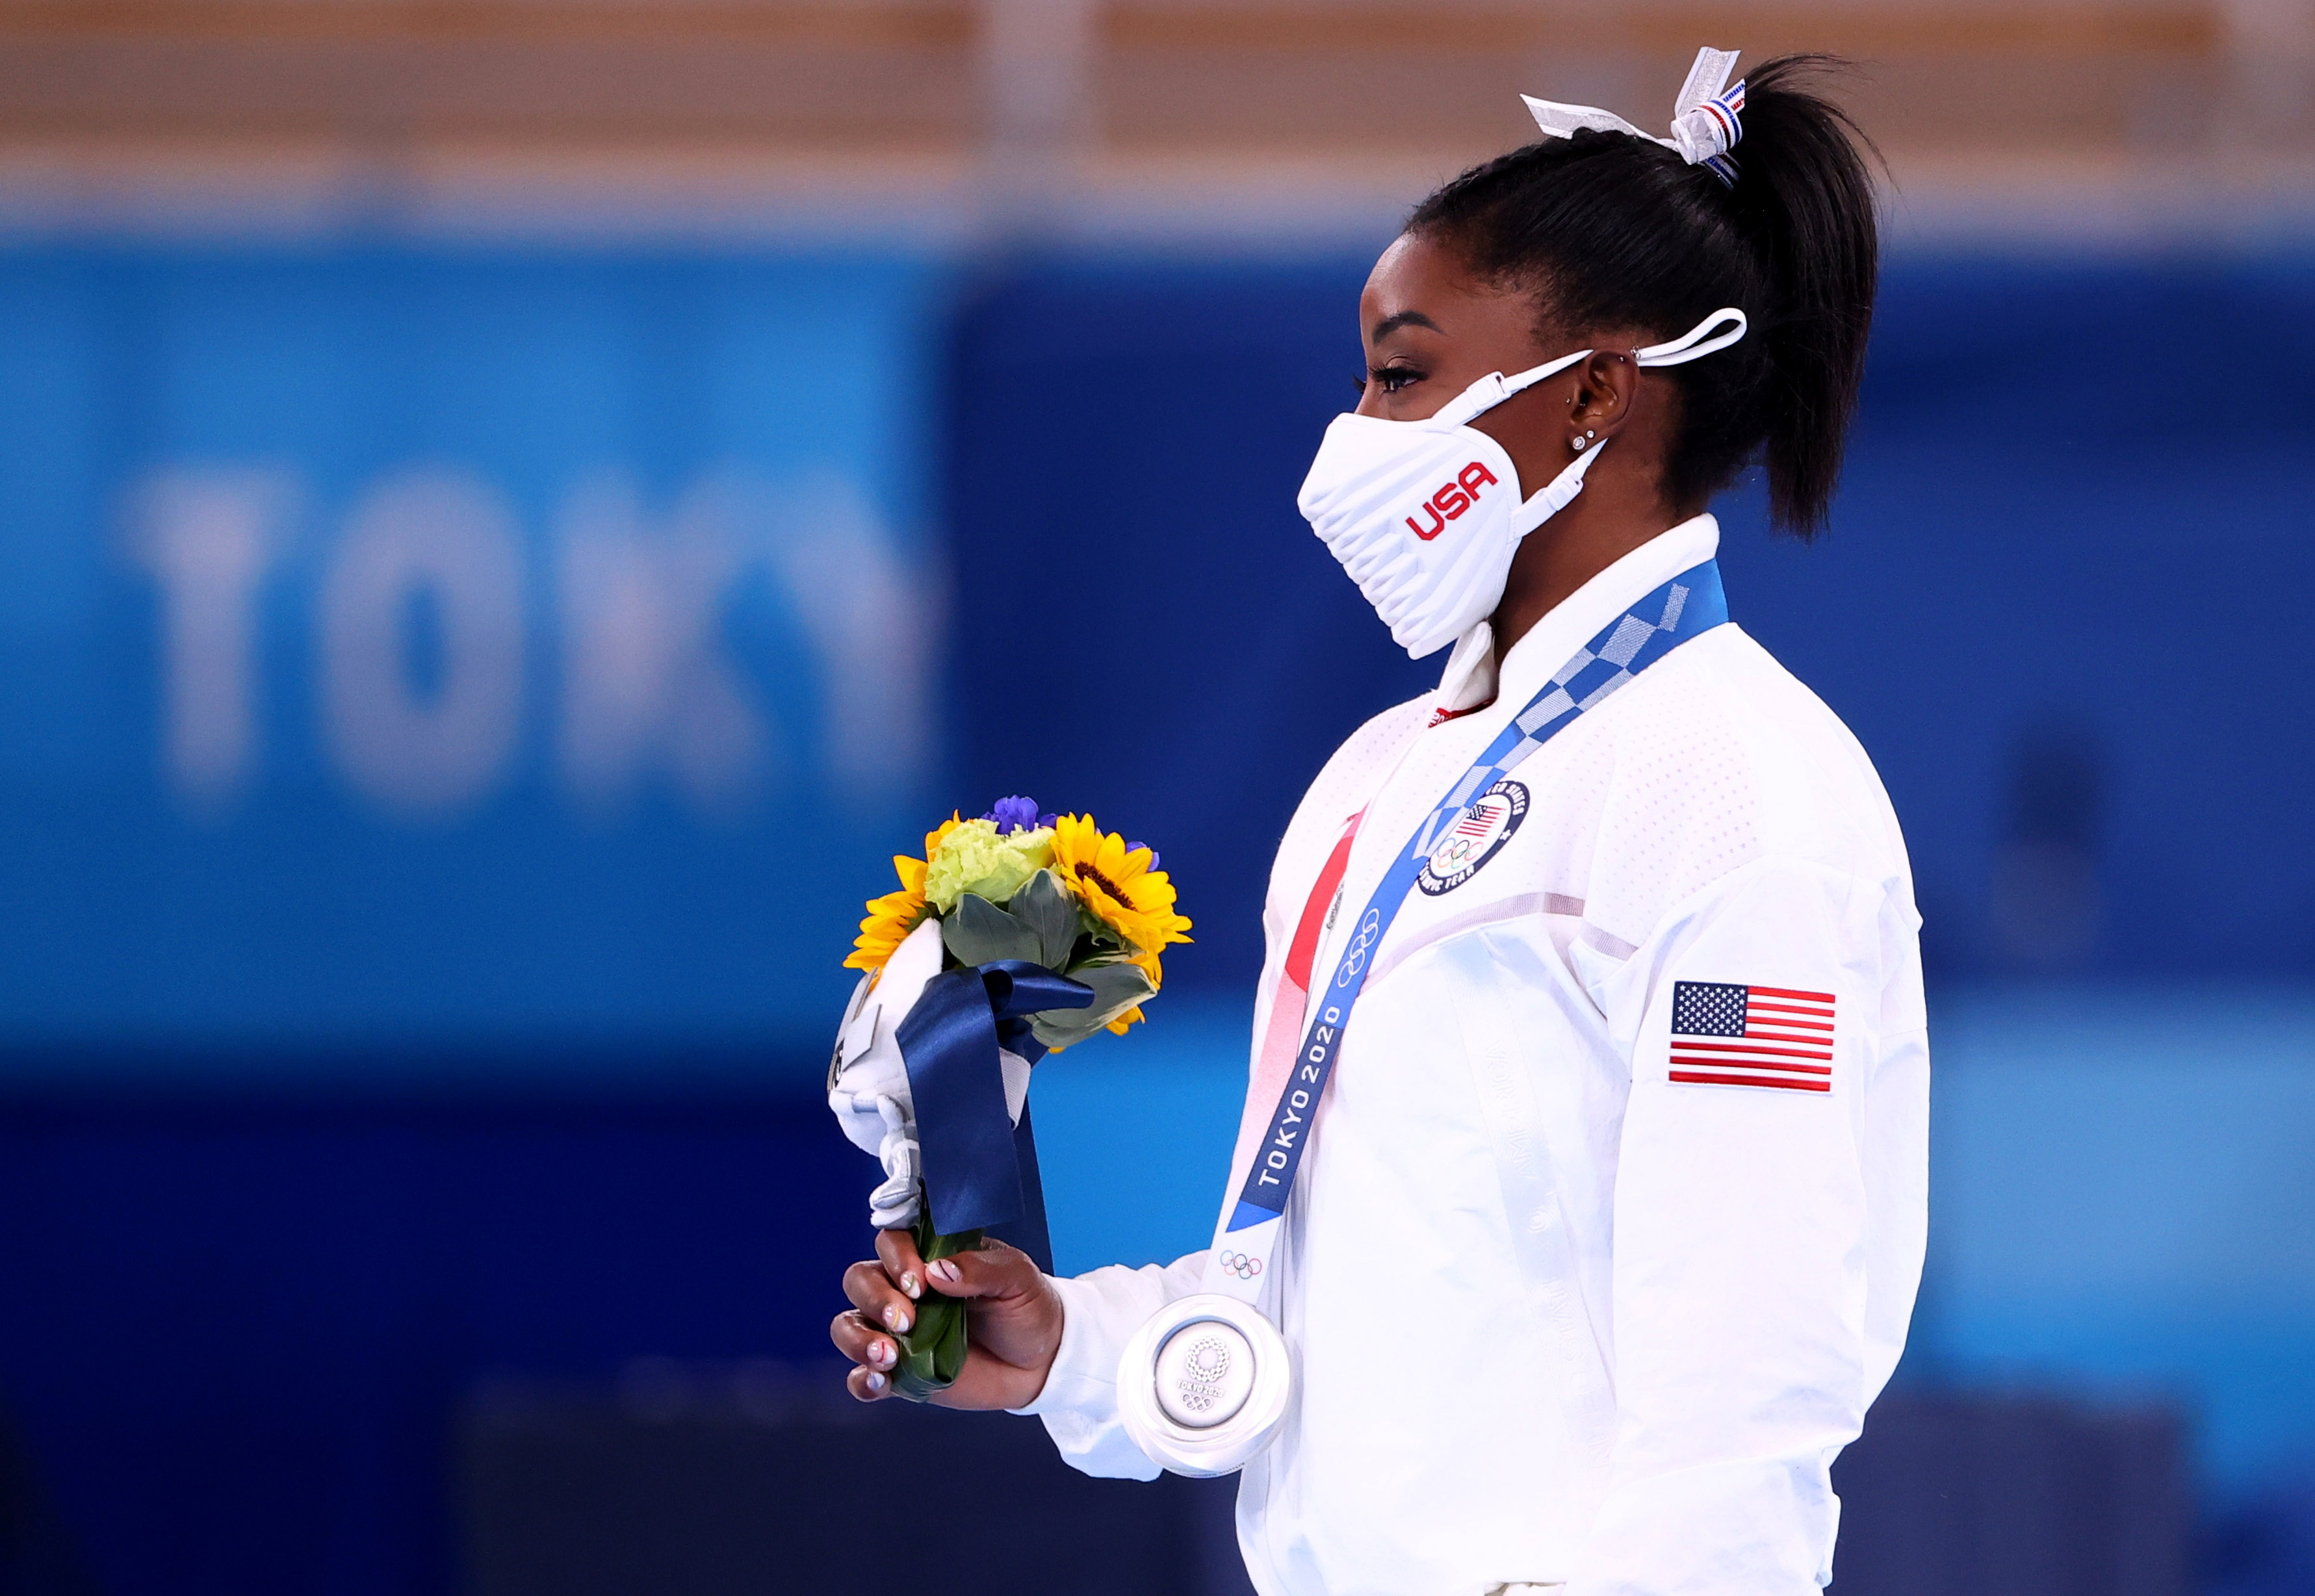 Tokyo 2020 Olympics - Gymnastics - Artistic - Women's Team - Medal Ceremony - Ariake Gymnastics Centre, Tokyo, Japan - July 27, 2021.  Silver medallist Simone Biles of the United States wearing a protective face mask holds flowers. REUTERS/Lindsey Wasson